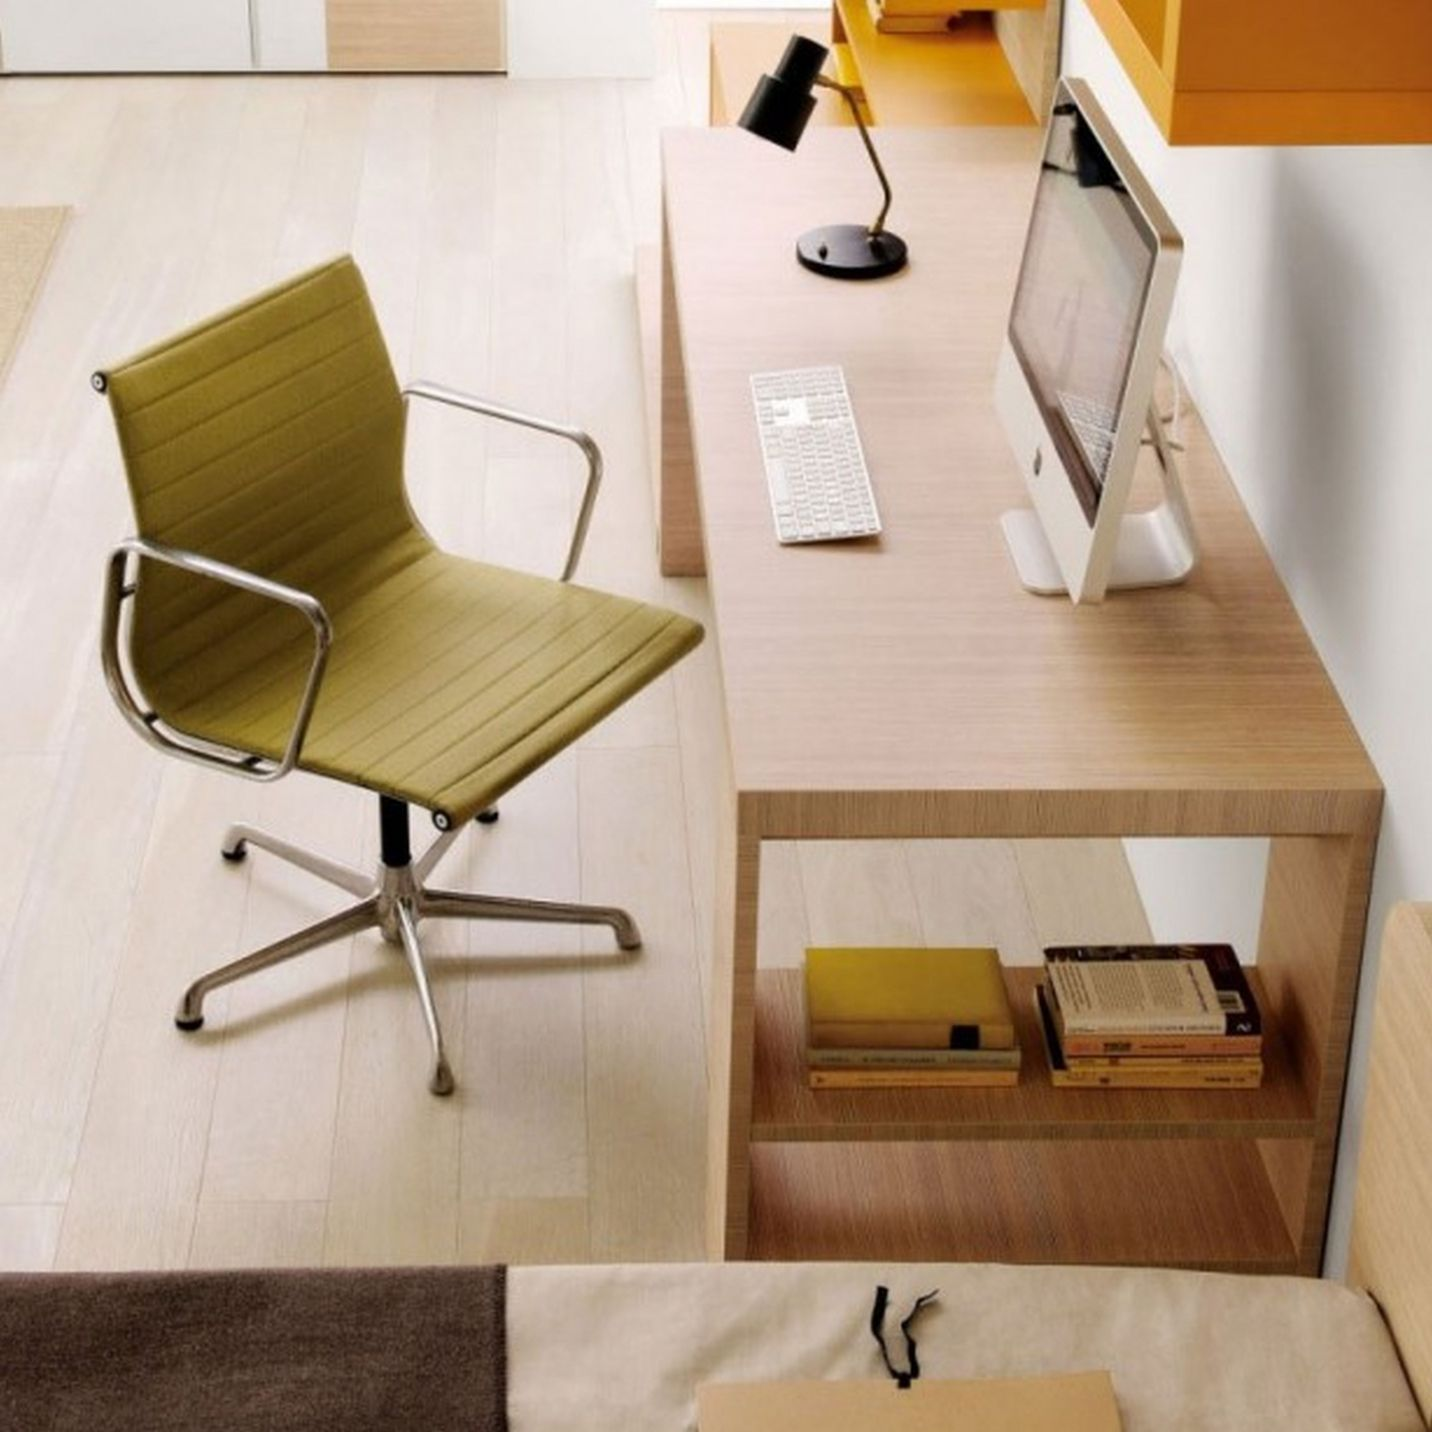 Best Place to Buy Office Desk